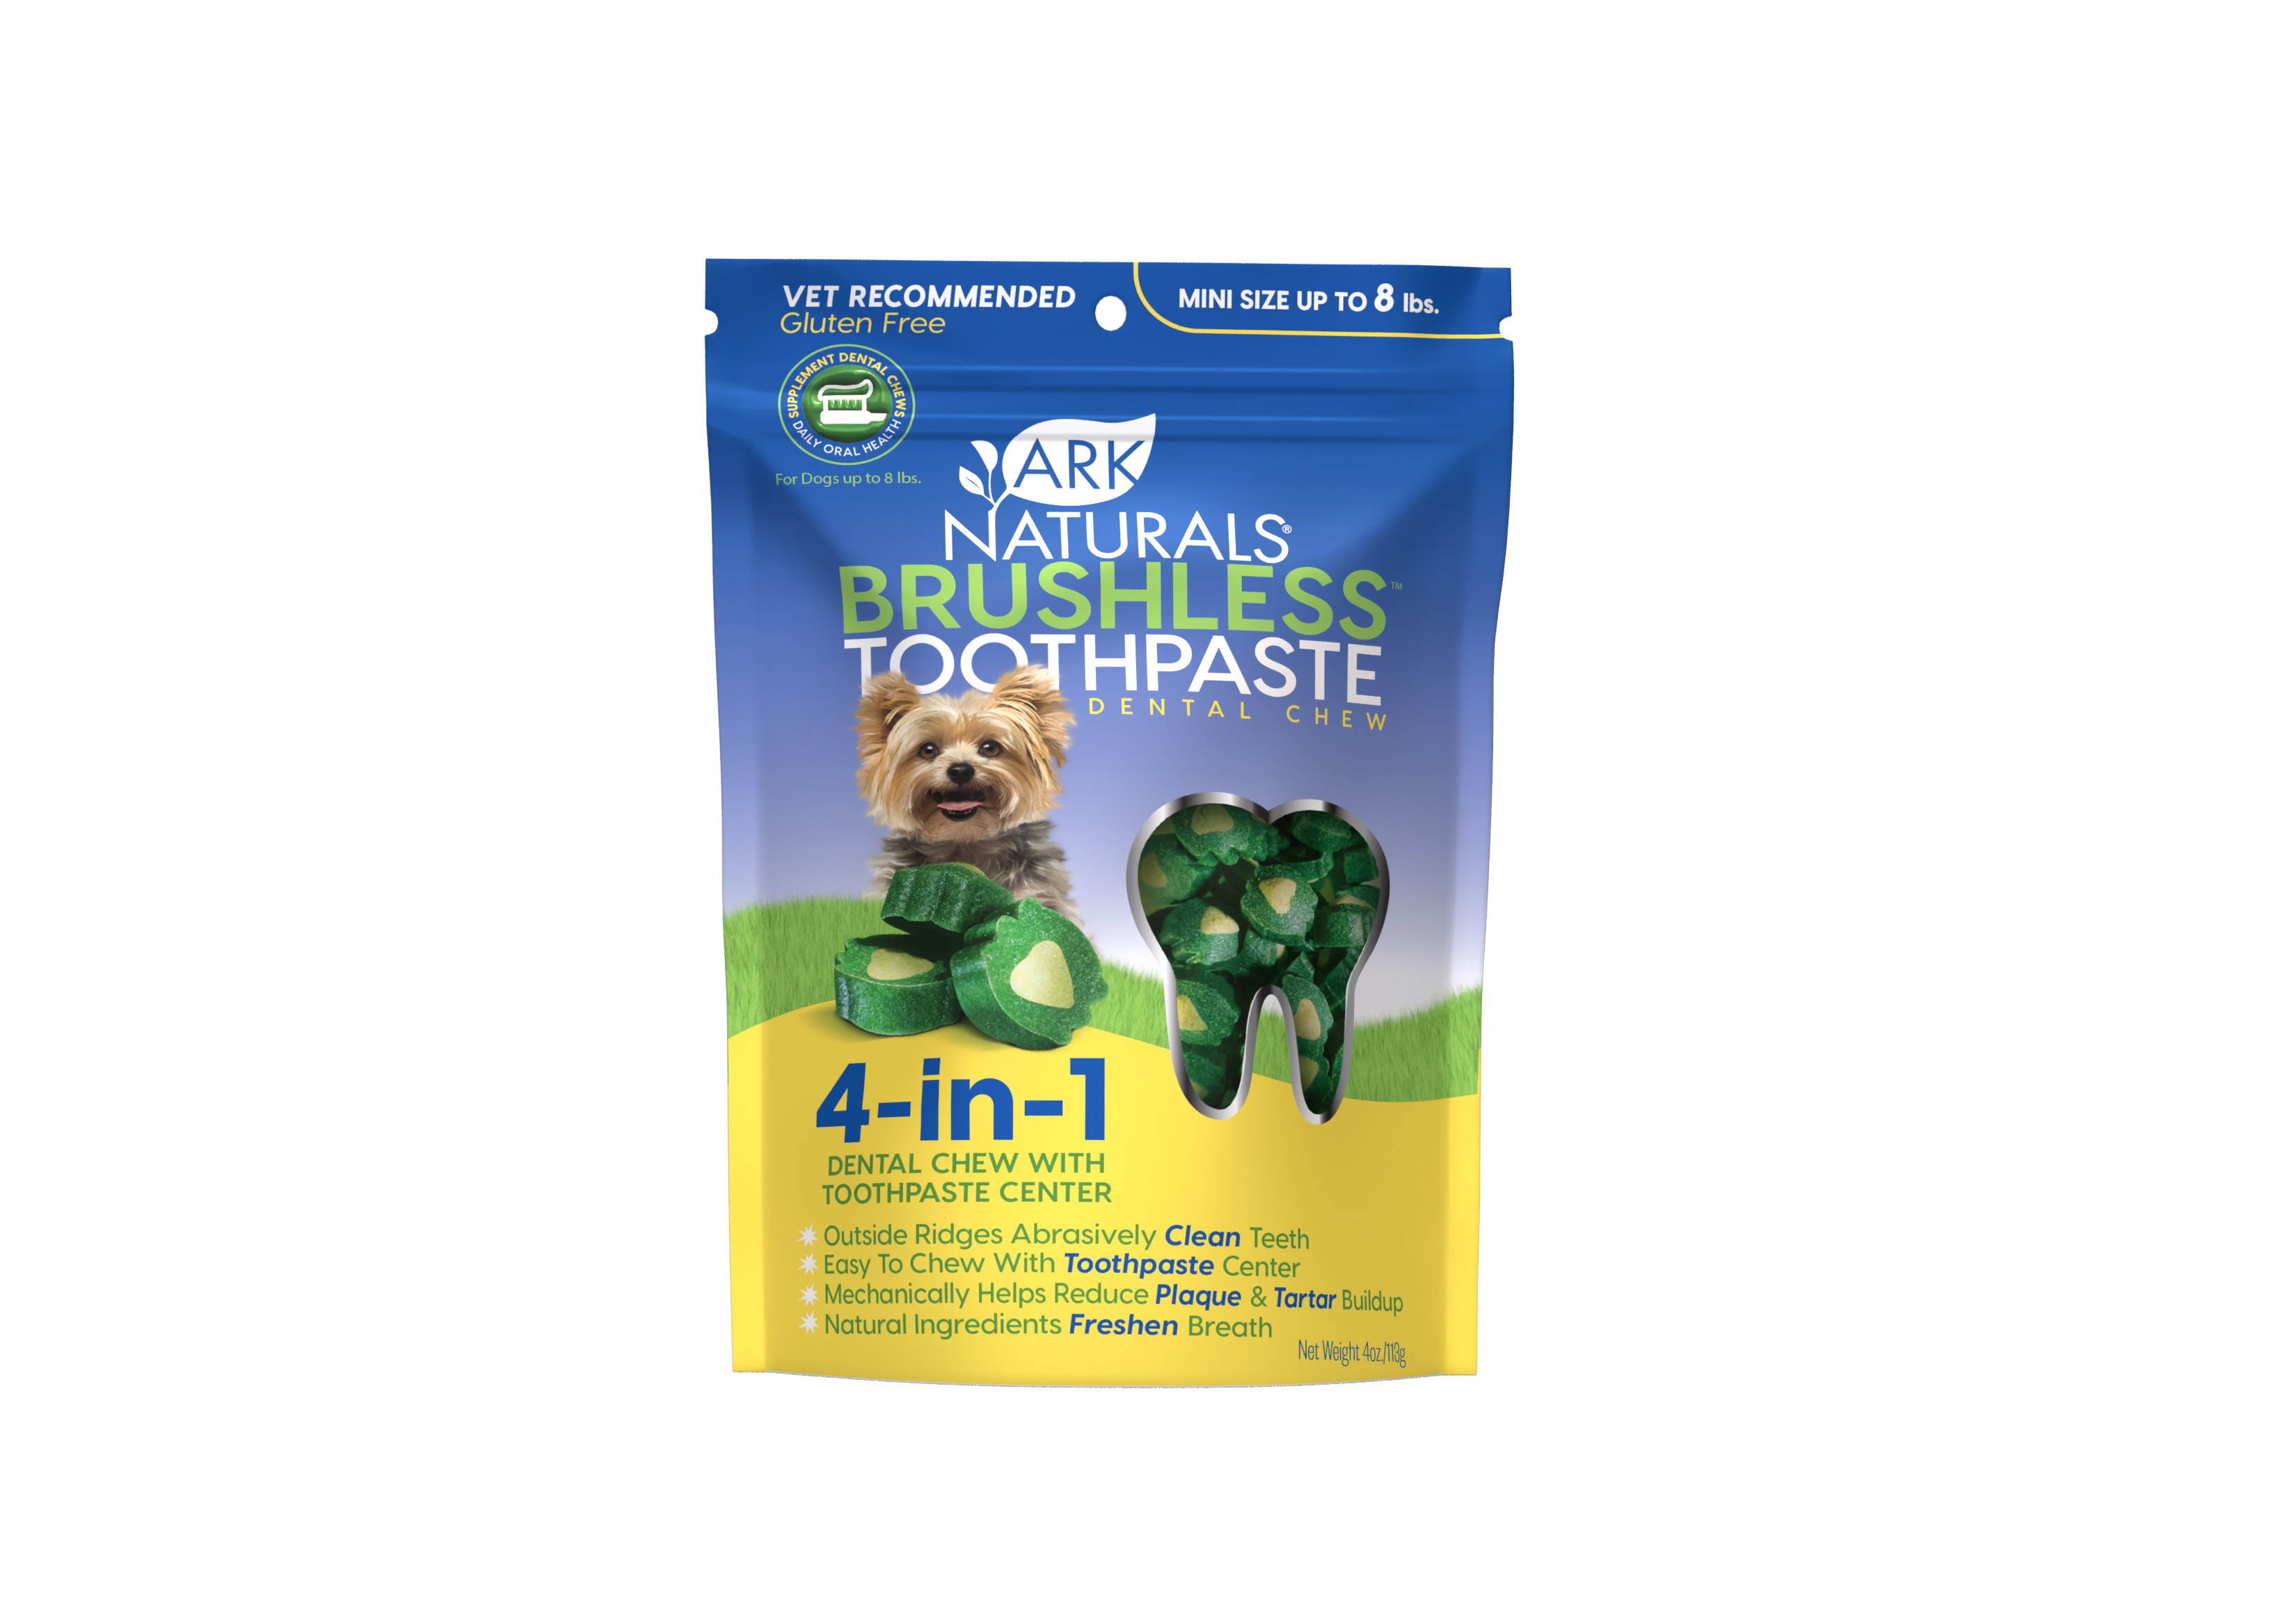 Ark Naturals Breath-Less Brushless Toothpaste Mini Dog & Cat Chews, 4-oz bag (Weights: 4ounces) Image